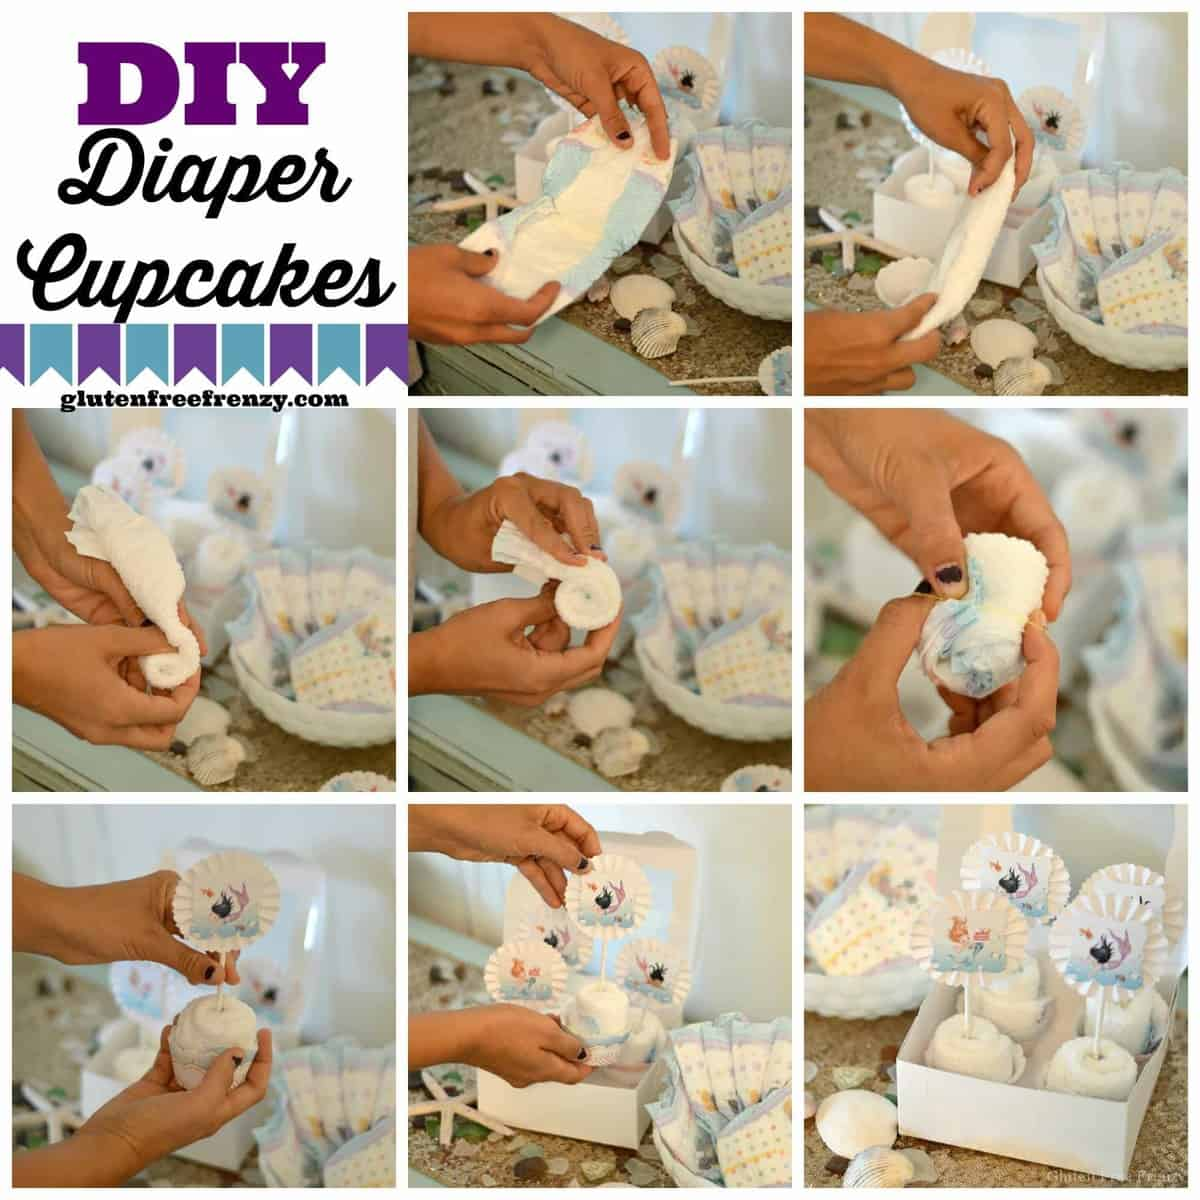 mermaid baby shower and DIY diaper cupcakes with Huggies